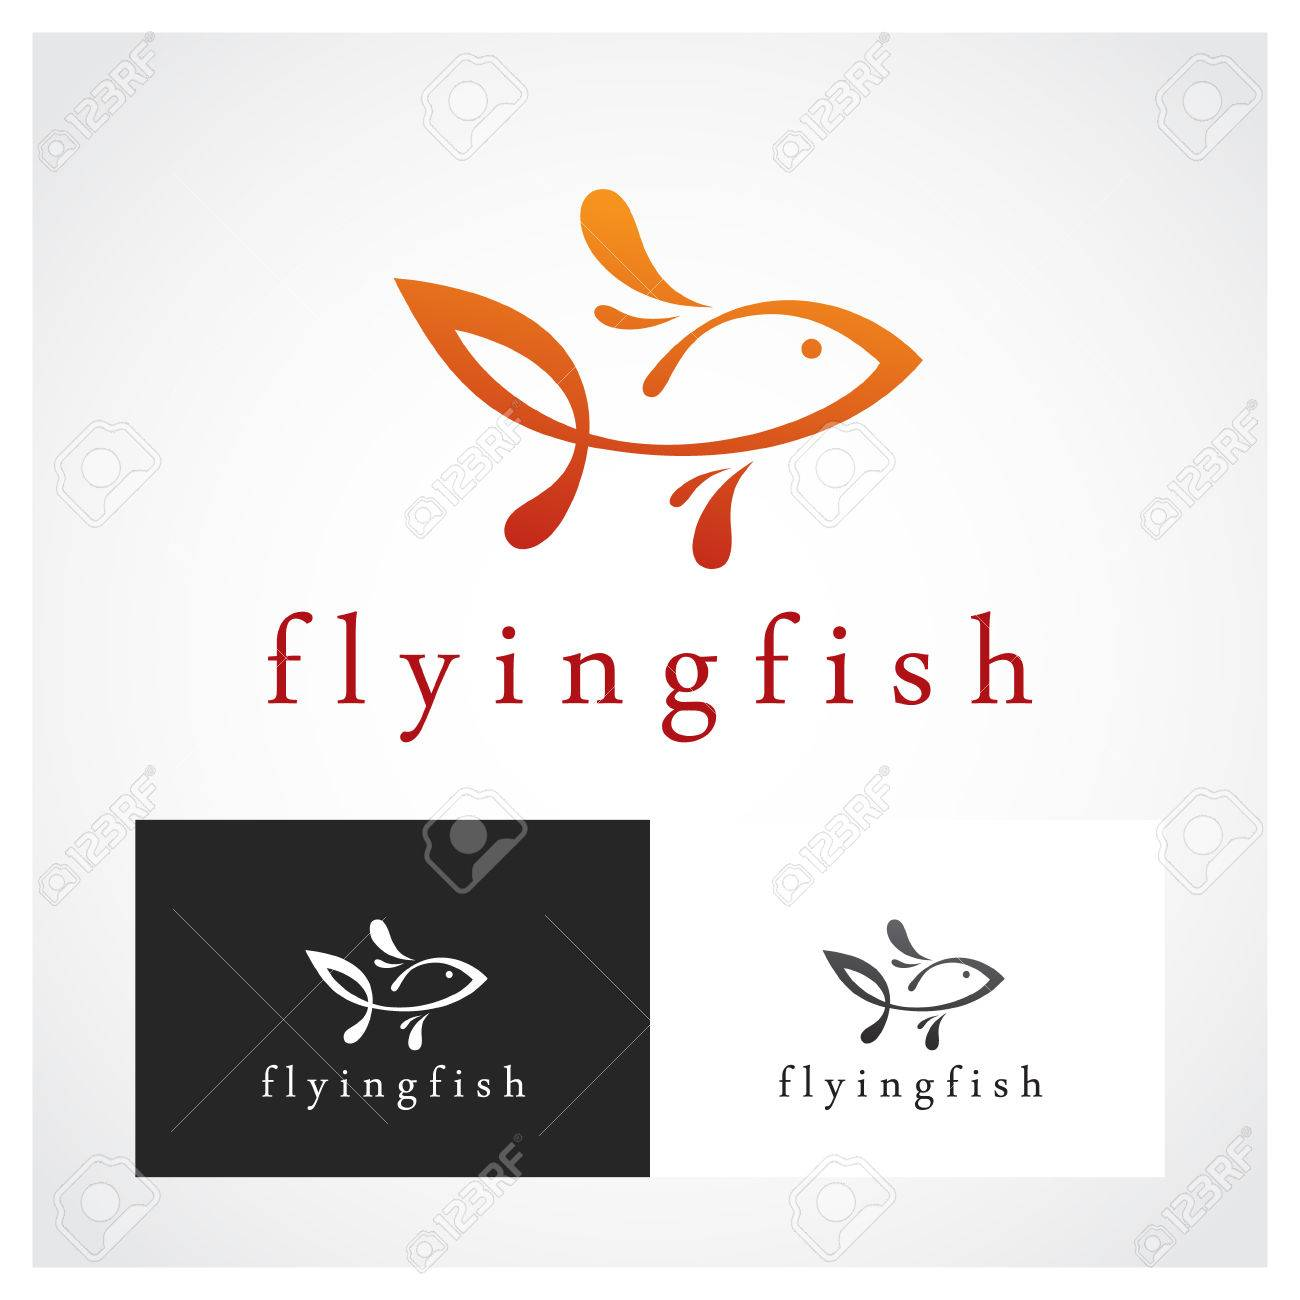 Fish Symbol Suitable For Professional Design Use Royalty Free